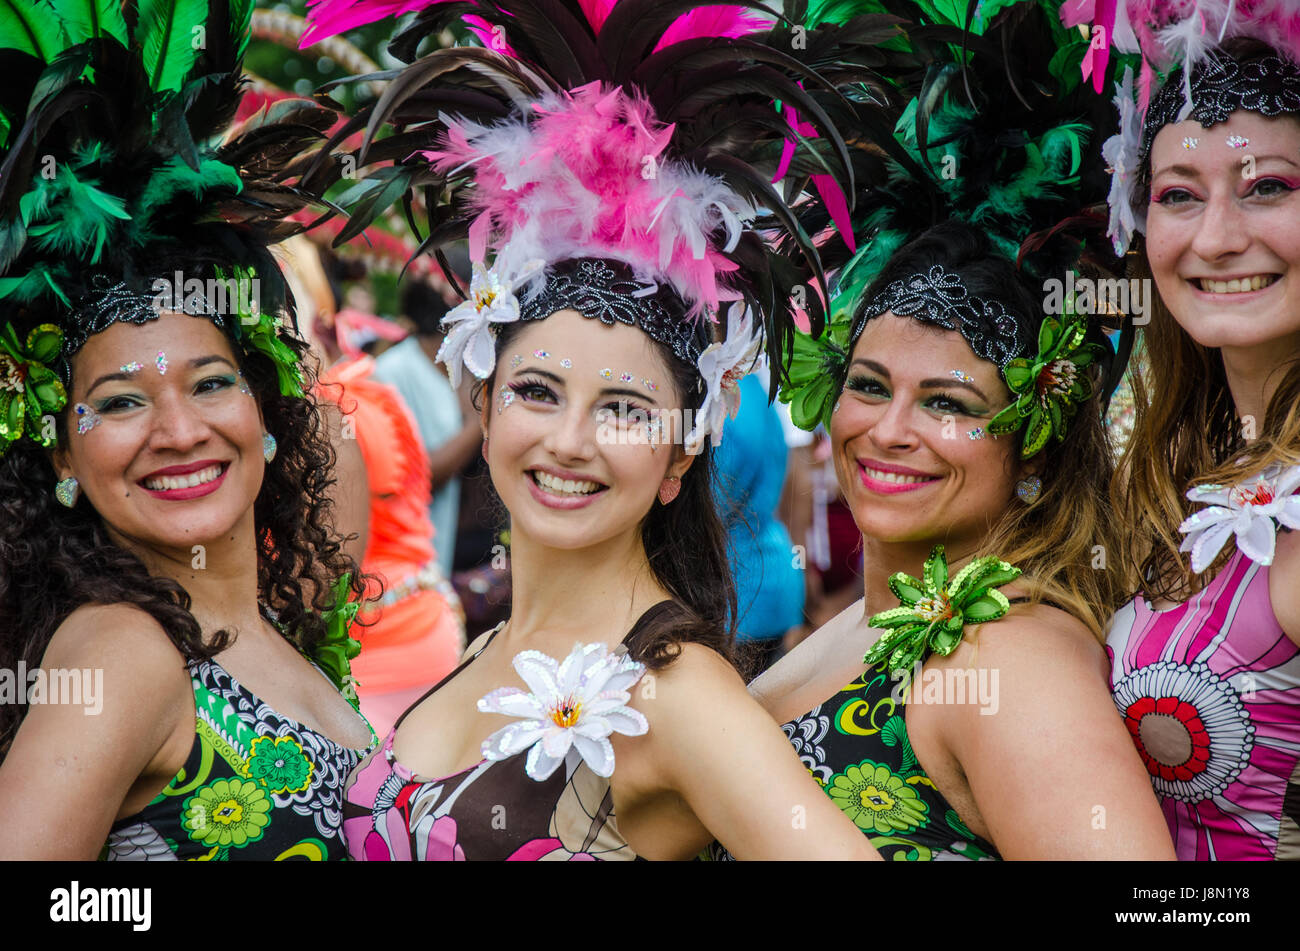 reading-uk-29th-may-2017-uk-weather-reading-carnival-goes-ahead-despite-J8N1Y8.jpg